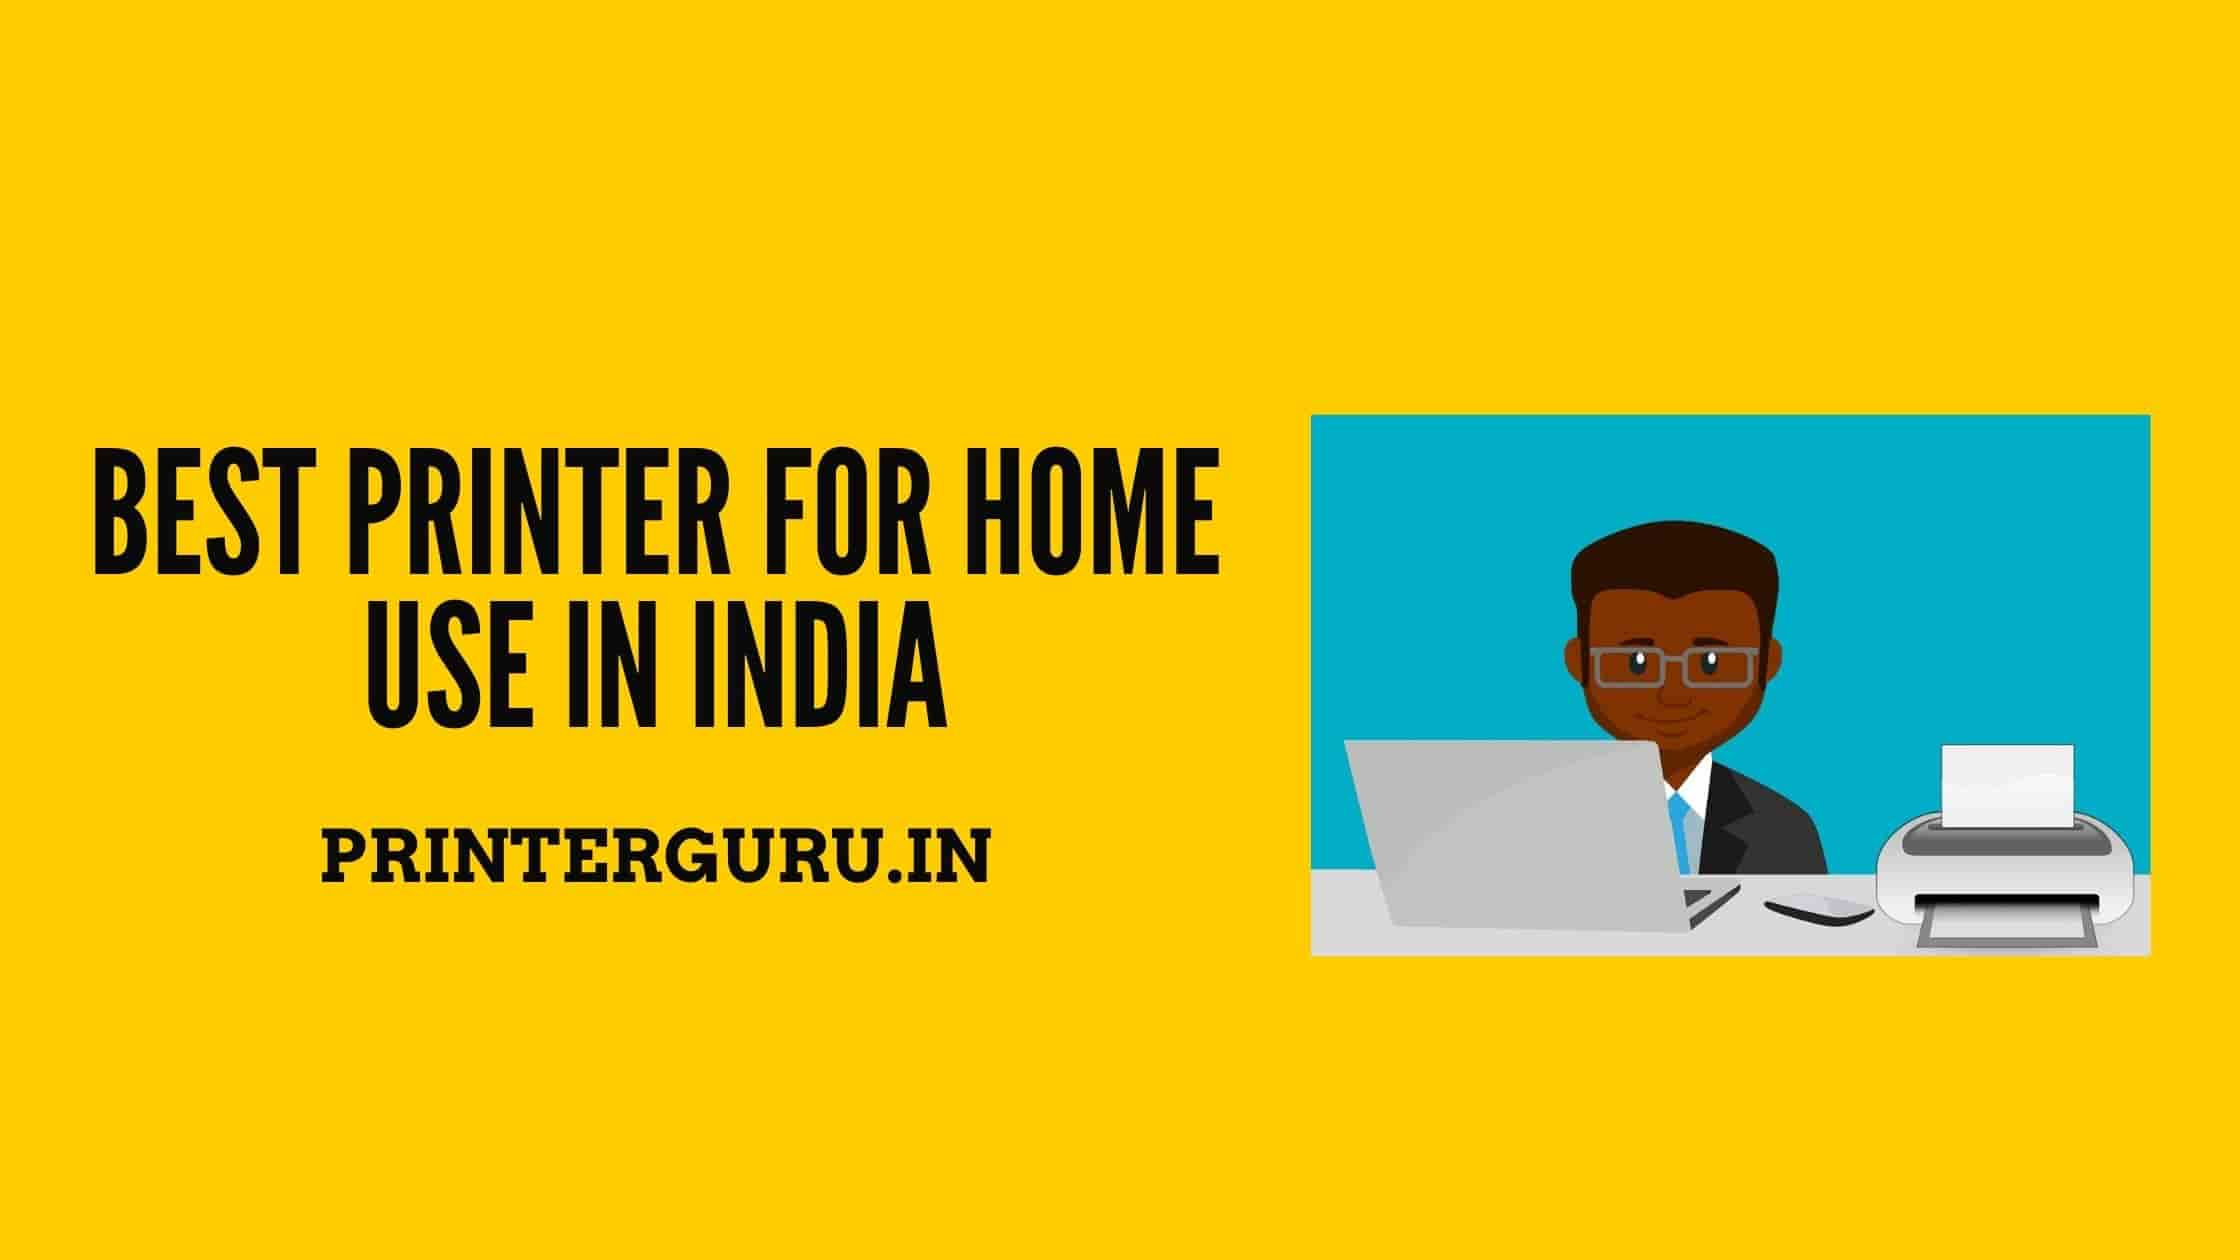 Best Printer For Home Use In India